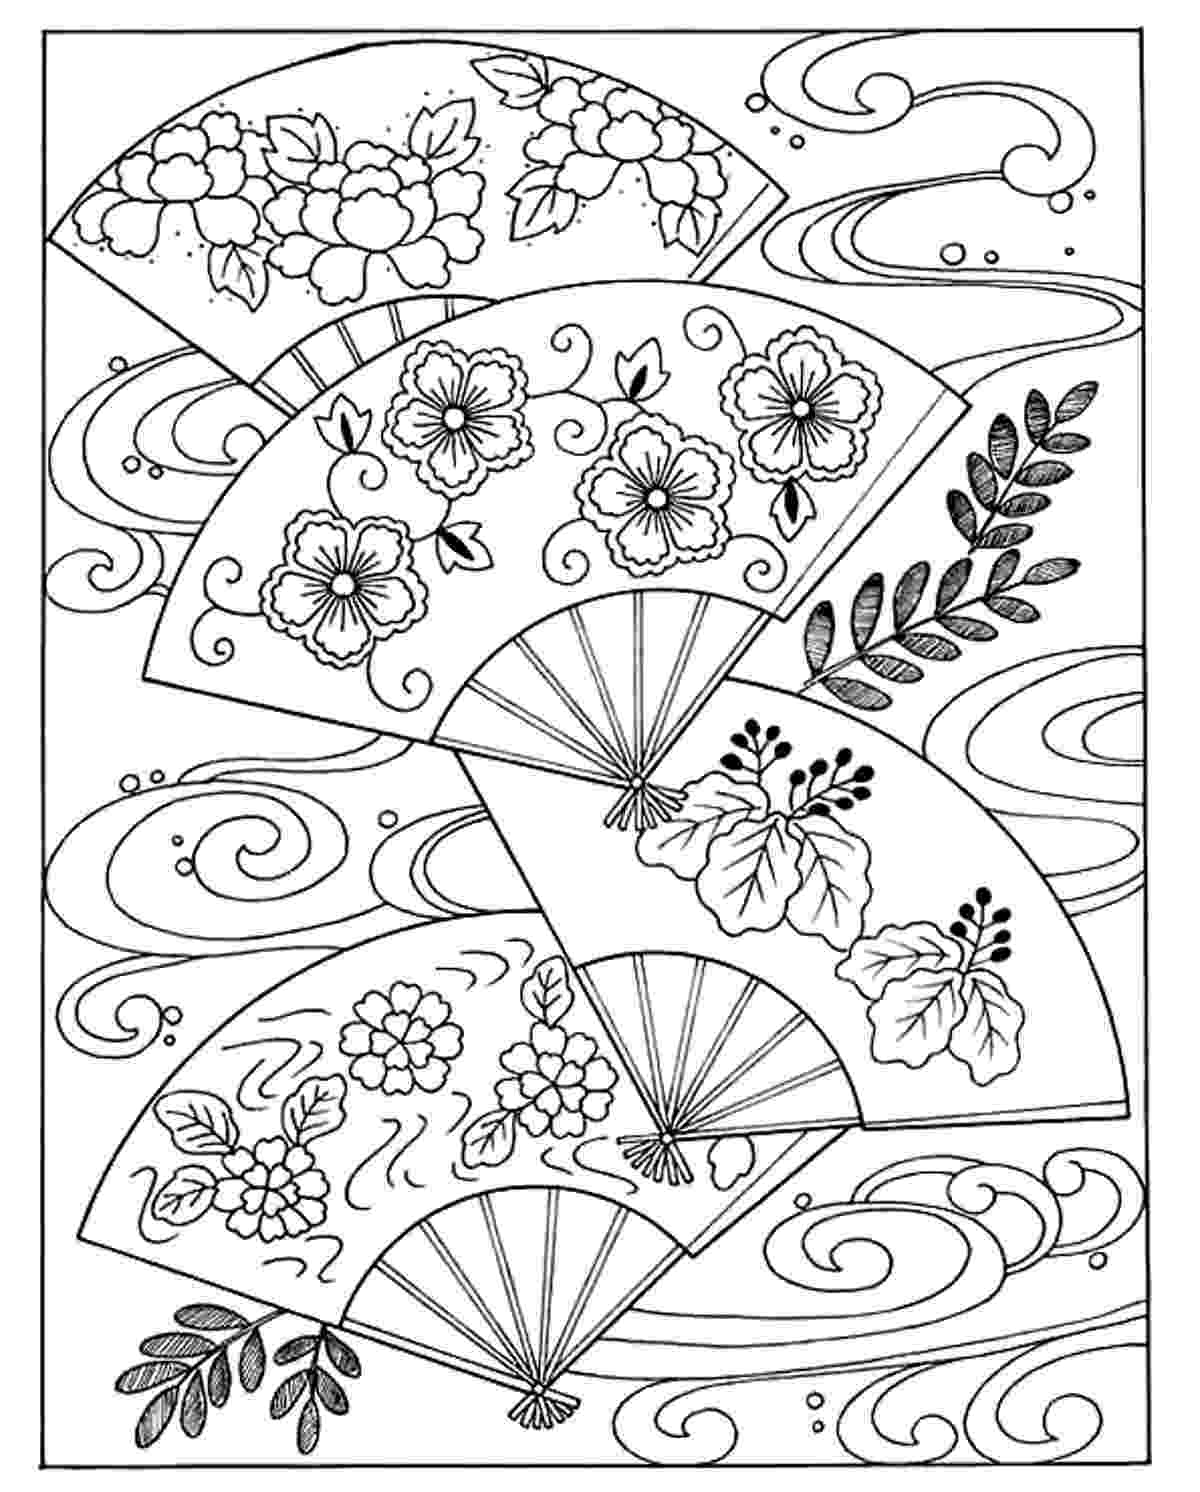 japanese coloring pages japan coloring pages to download and print for free japanese coloring pages